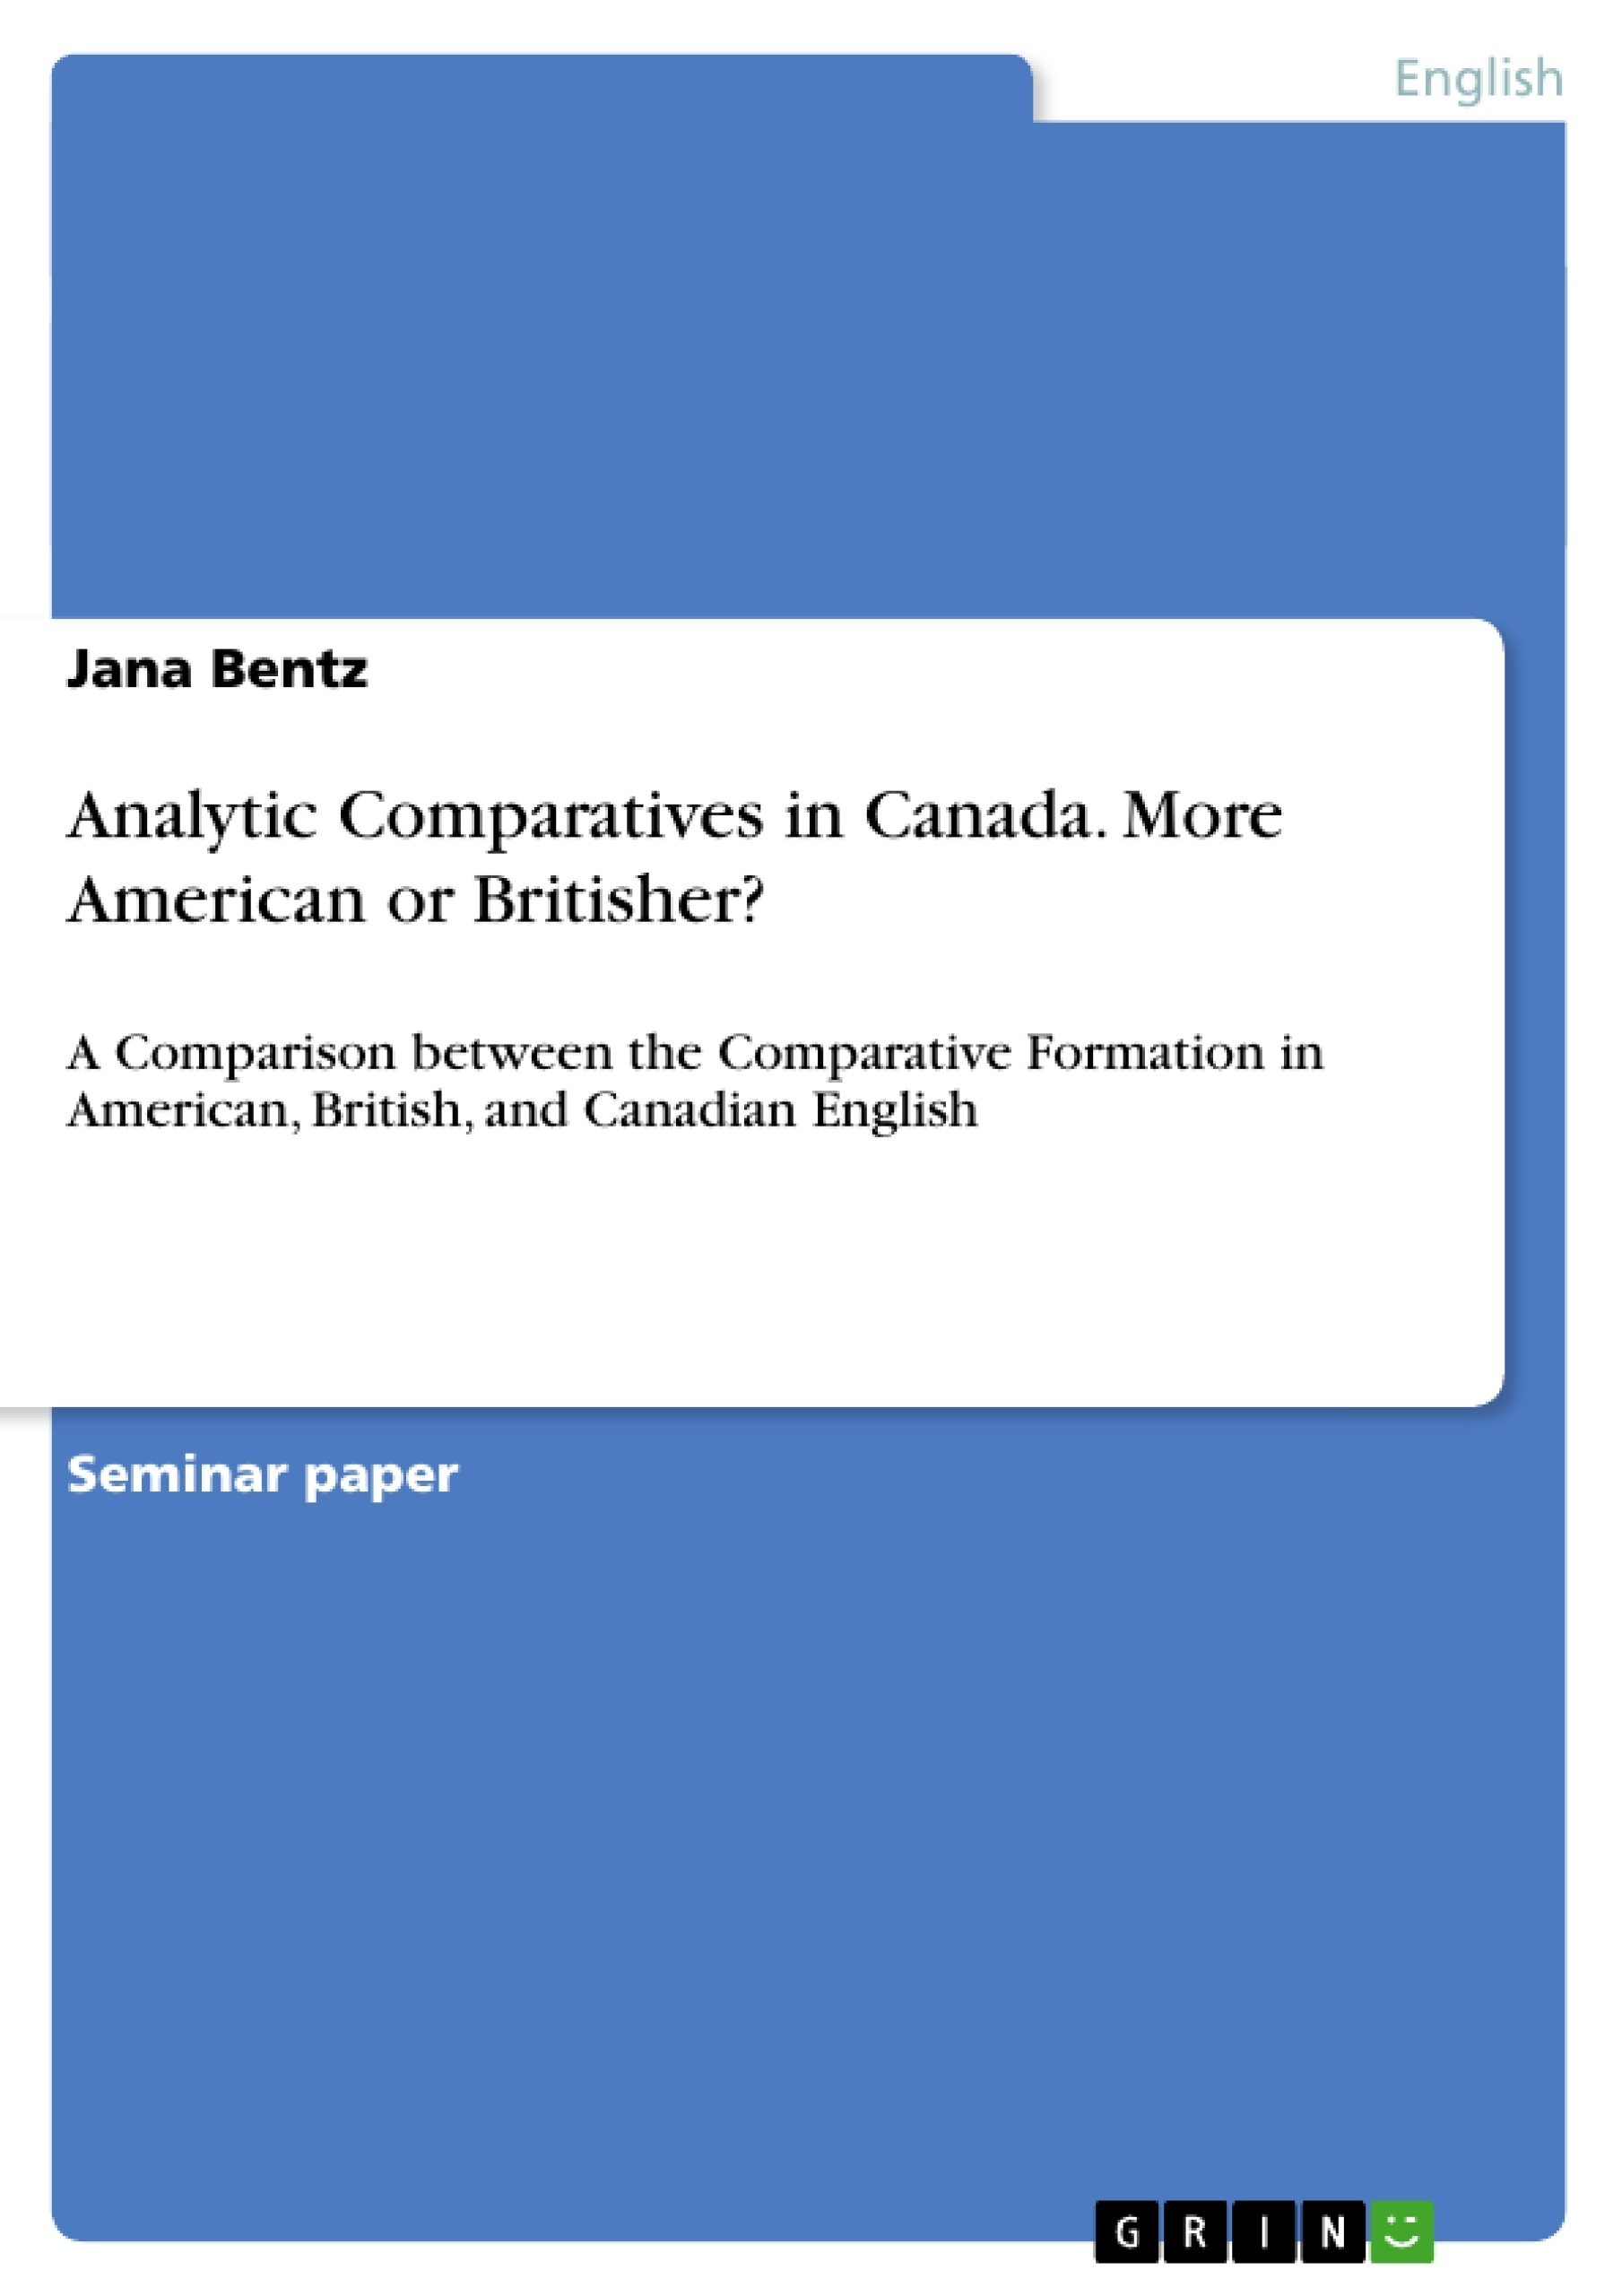 Title: Analytic Comparatives in Canada. More American or Britisher?